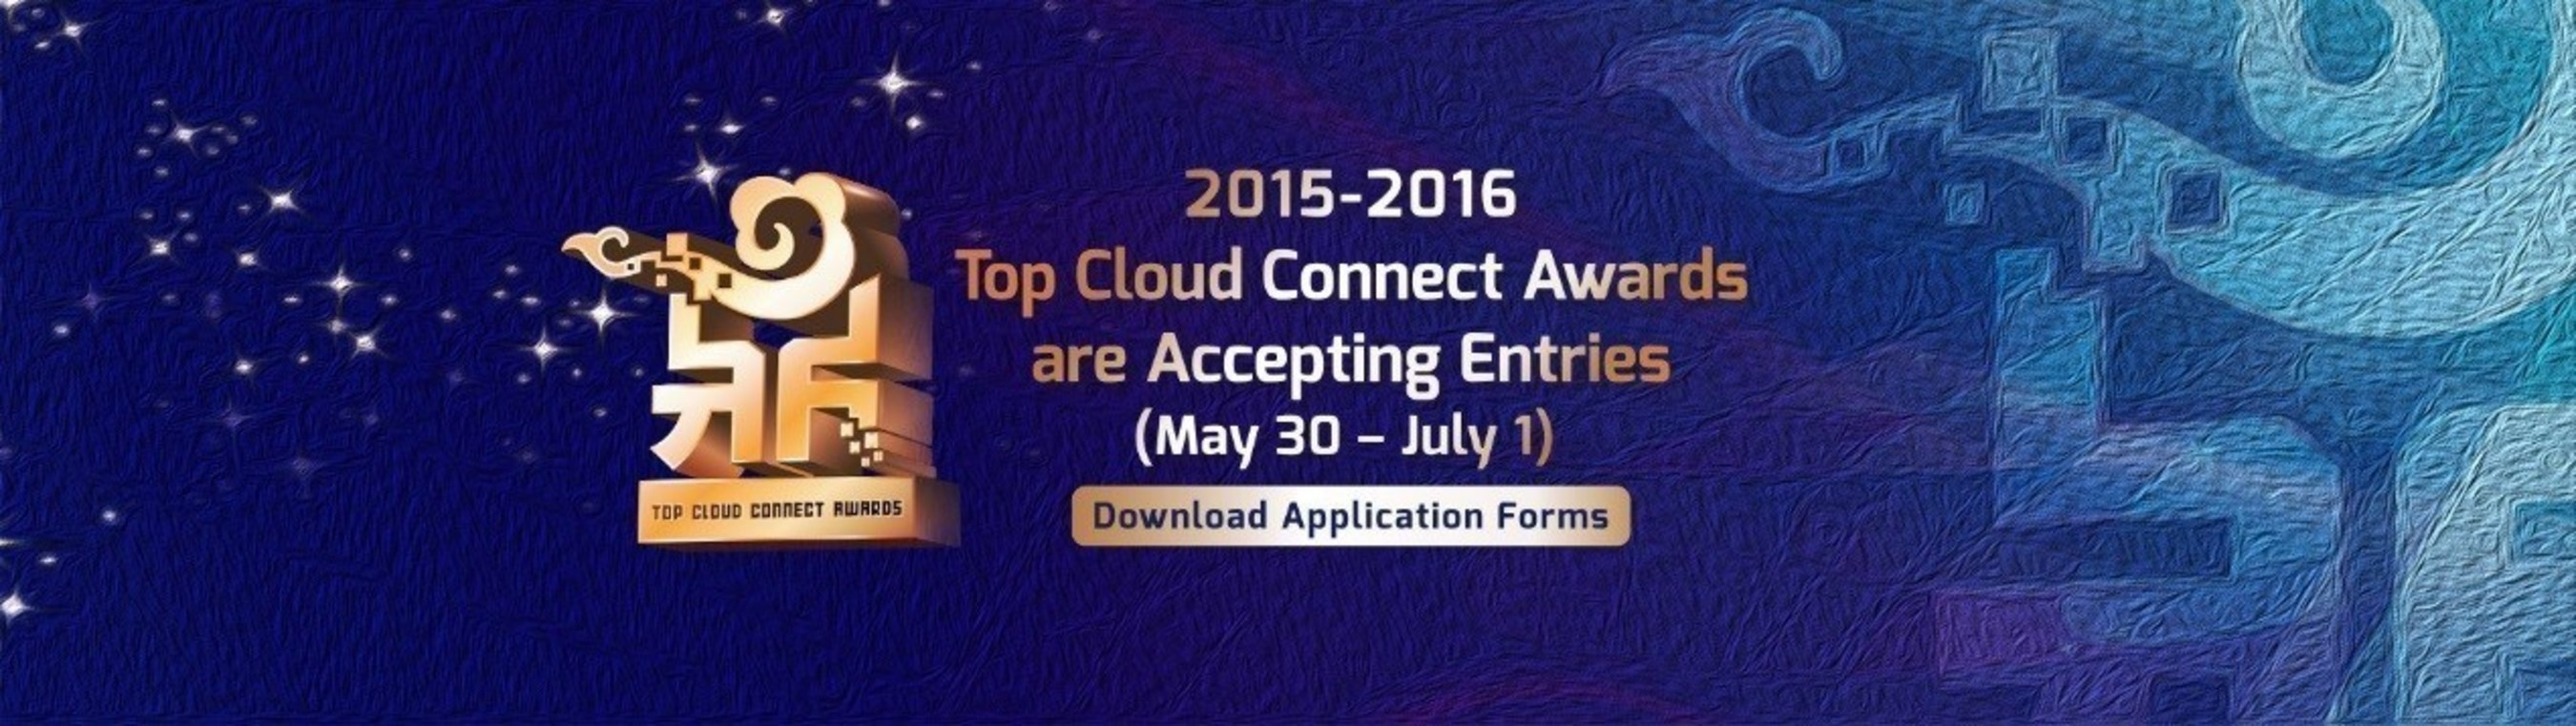 Poster of the 3rd Top Cloud Connect Awards